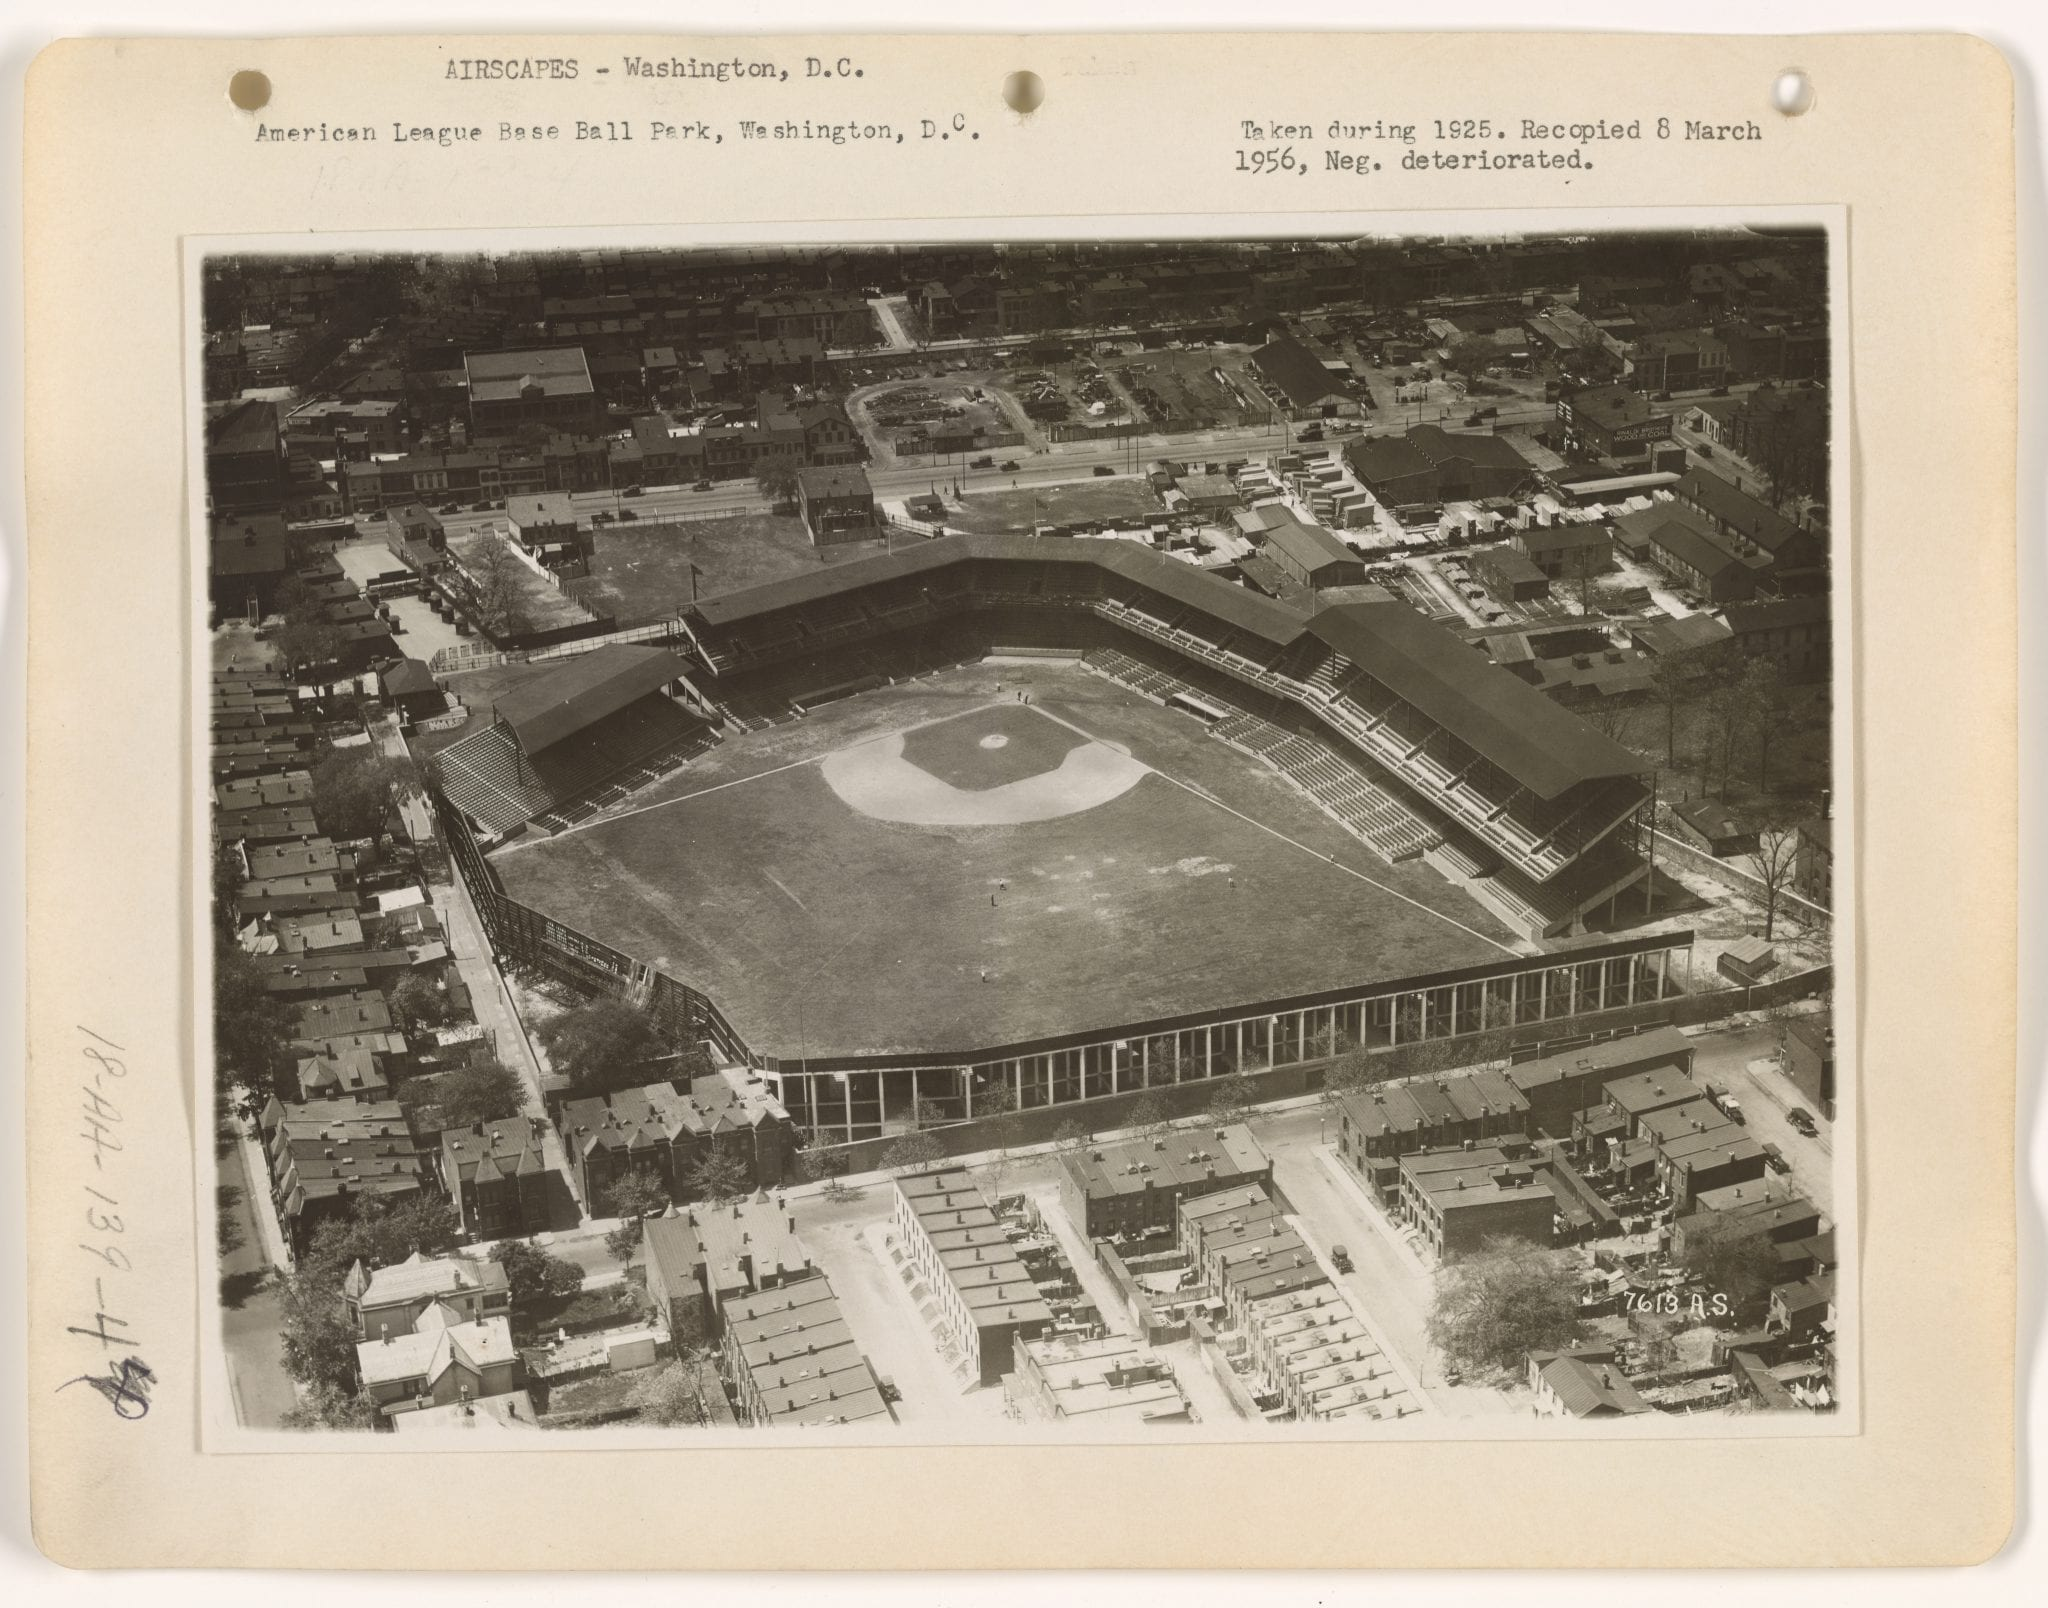 Griffith Stadium from the air in 1925